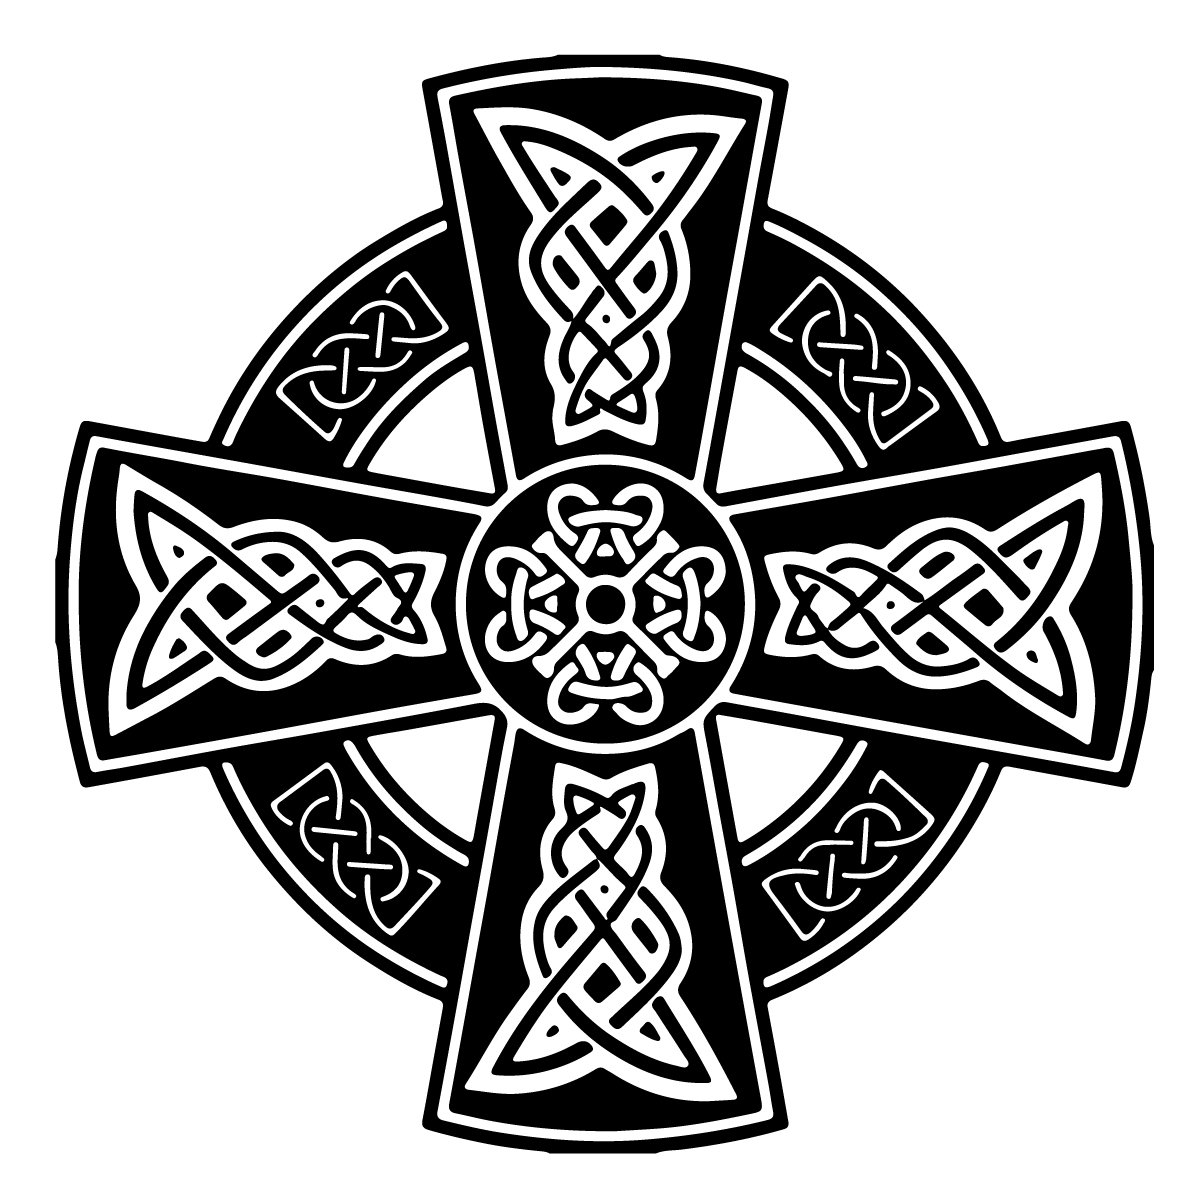 The celtic cross irish cross meaning and symbolism the celtic cross irish cross meaning and symbolism buycottarizona